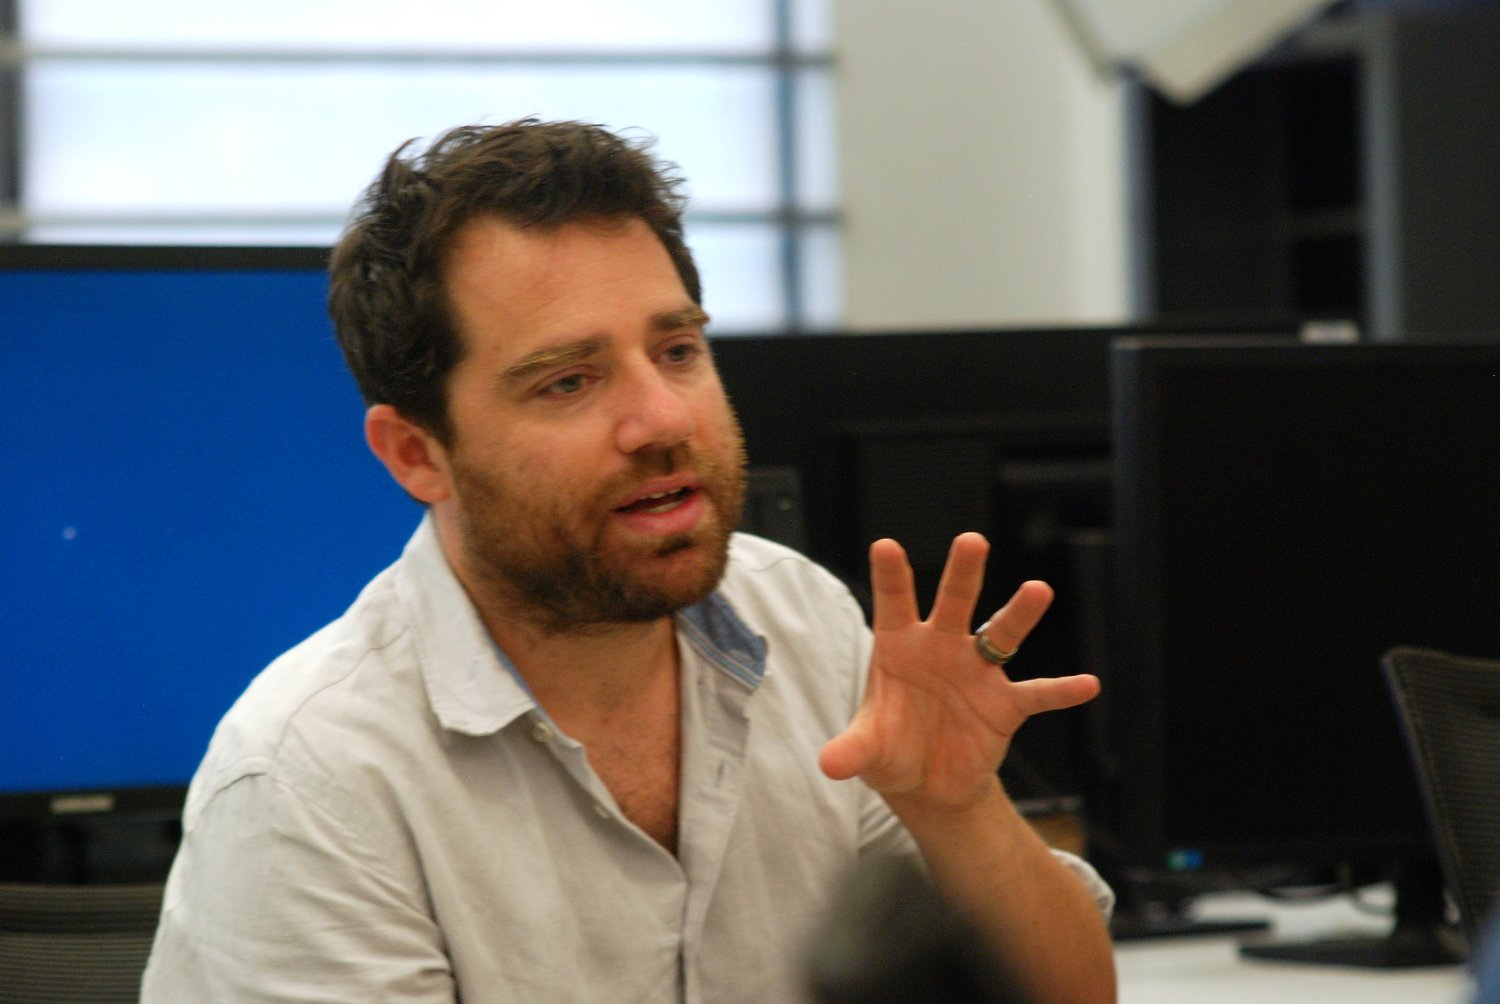 Author Michael Otterman, formerly of Merrick and Old Westbury, stopped by the Hofstra University Summer High School Journalism Institute on July 29 to discuss journalism with participants.